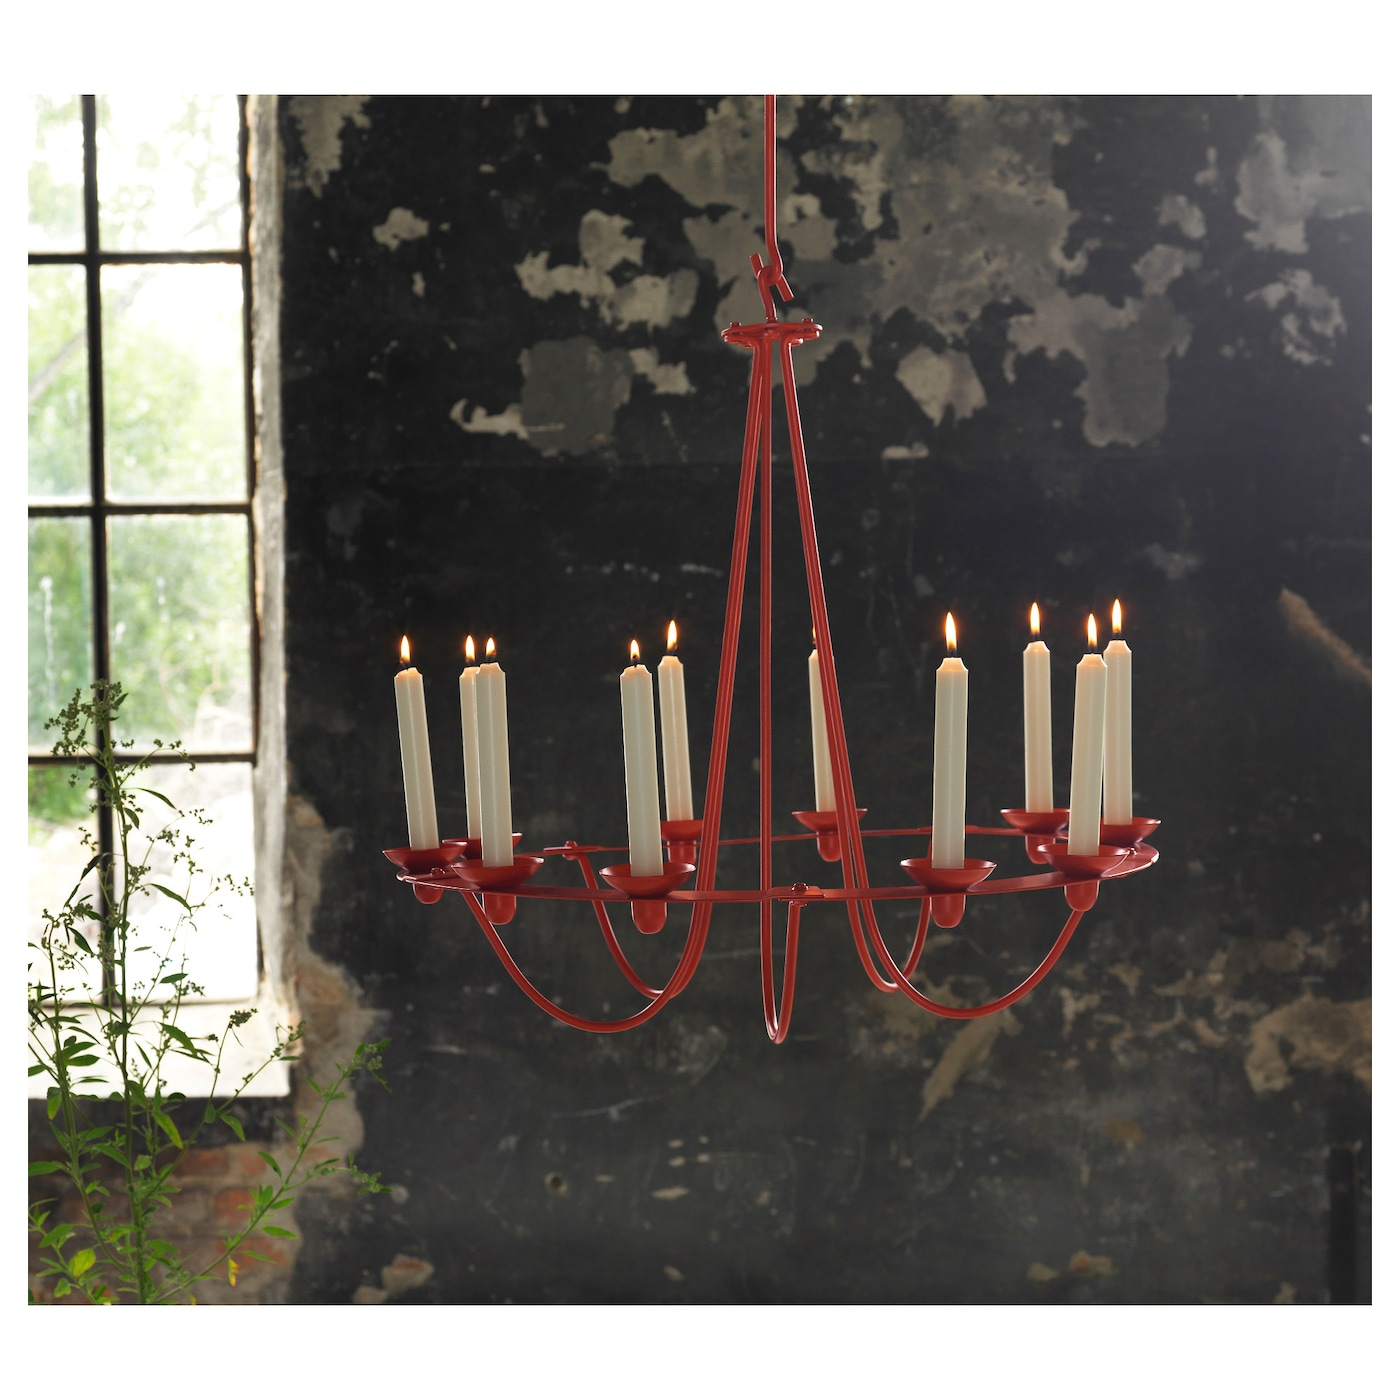 IKEA VÄSSAD chandelier for 10 candles 4 removable hooks; height adjustable according to need.